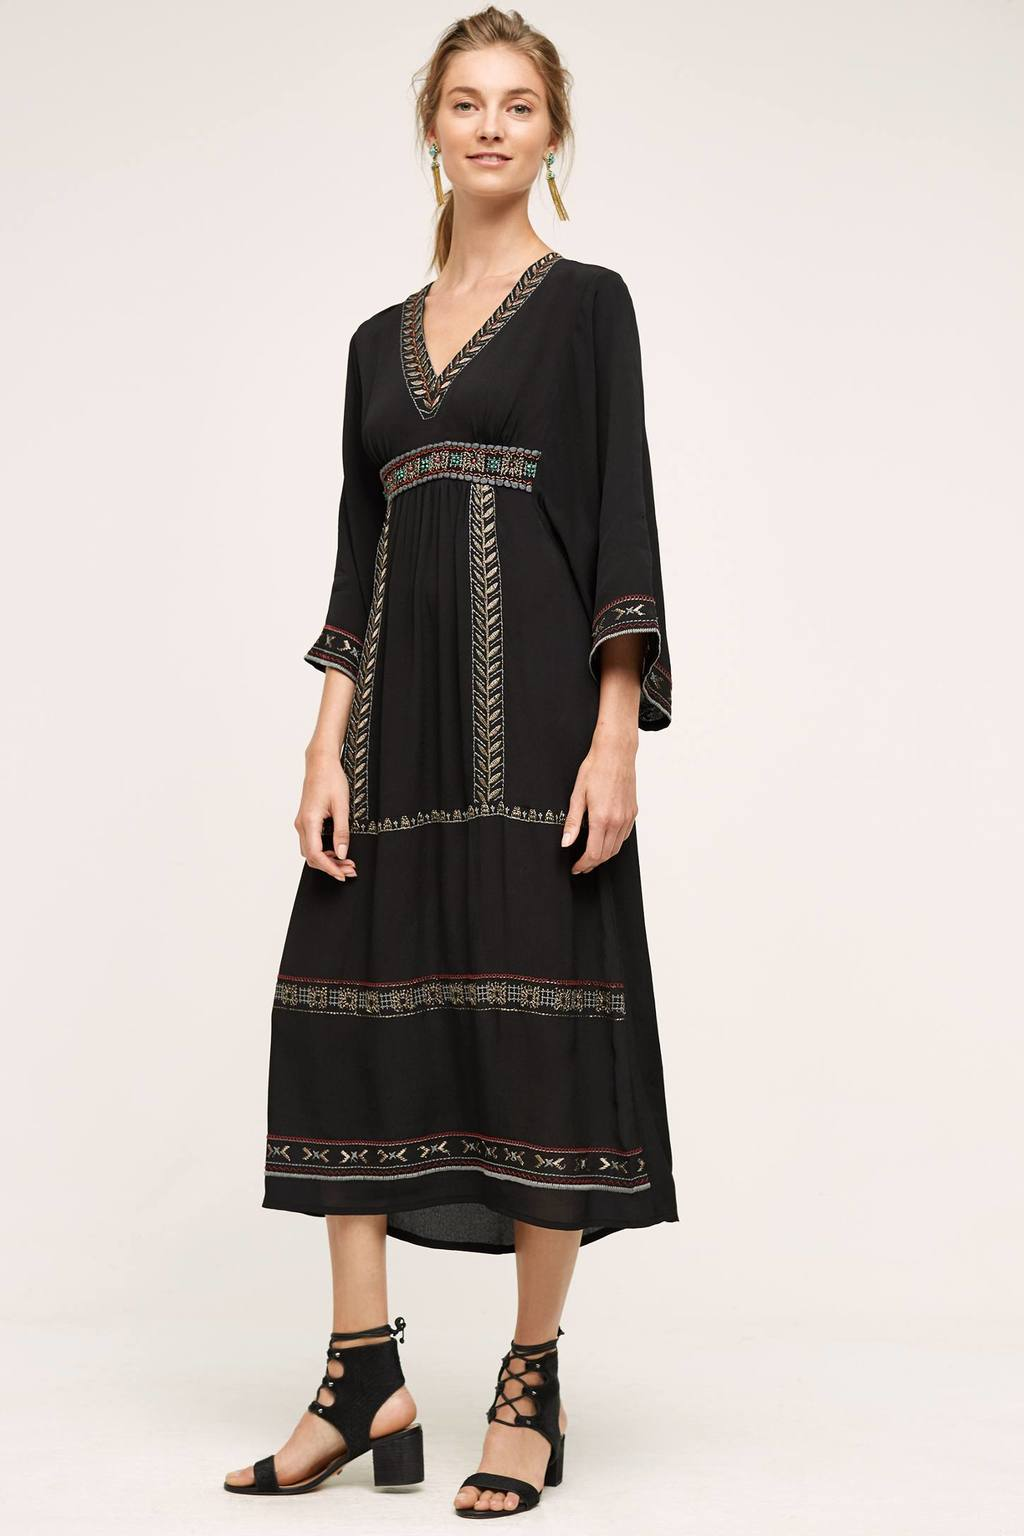 Isabel Beaded Midi Dress, Black - length: calf length; neckline: low v-neck; sleeve style: angel/waterfall; fit: empire; style: sundress; secondary colour: white; predominant colour: black; occasions: casual, holiday; fibres: cotton - 100%; hip detail: subtle/flattering hip detail; sleeve length: 3/4 length; trends: monochrome; texture group: cotton feel fabrics; pattern type: fabric; pattern size: standard; pattern: patterned/print; embellishment: embroidered; season: a/w 2016; wardrobe: highlight